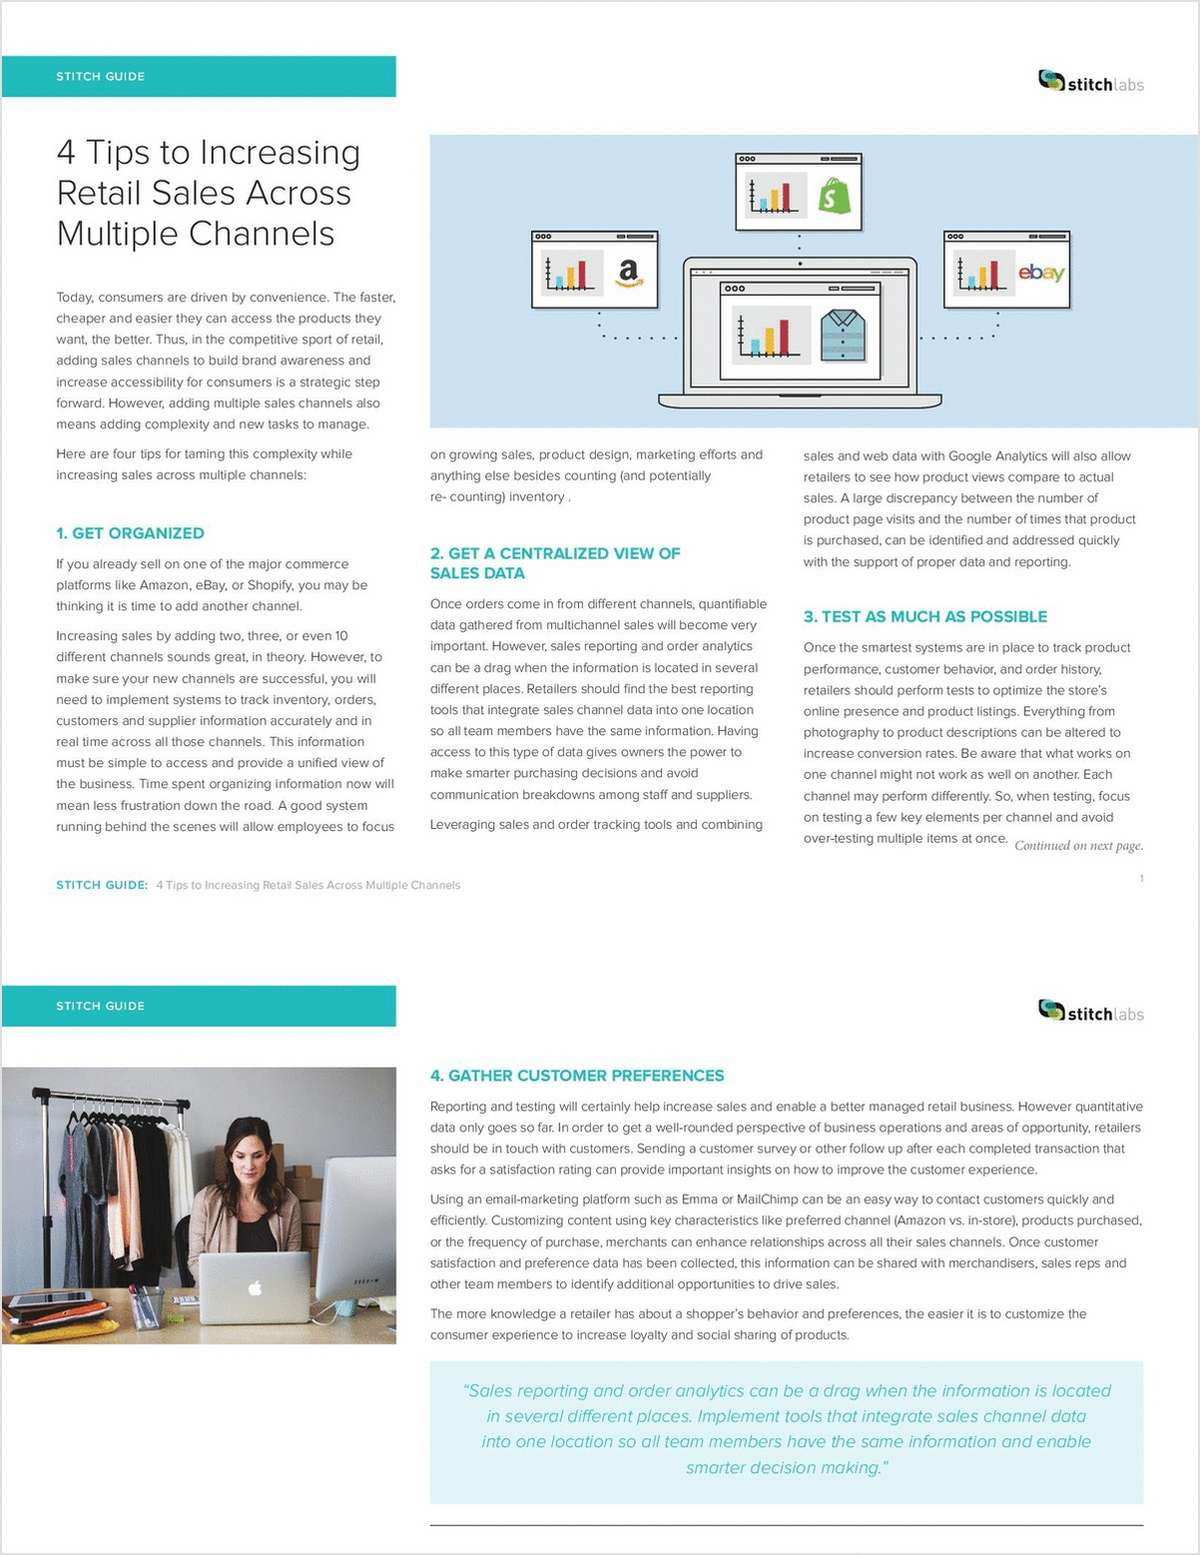 4 Tips to Increasing Retail Sales Across Multiple Channels